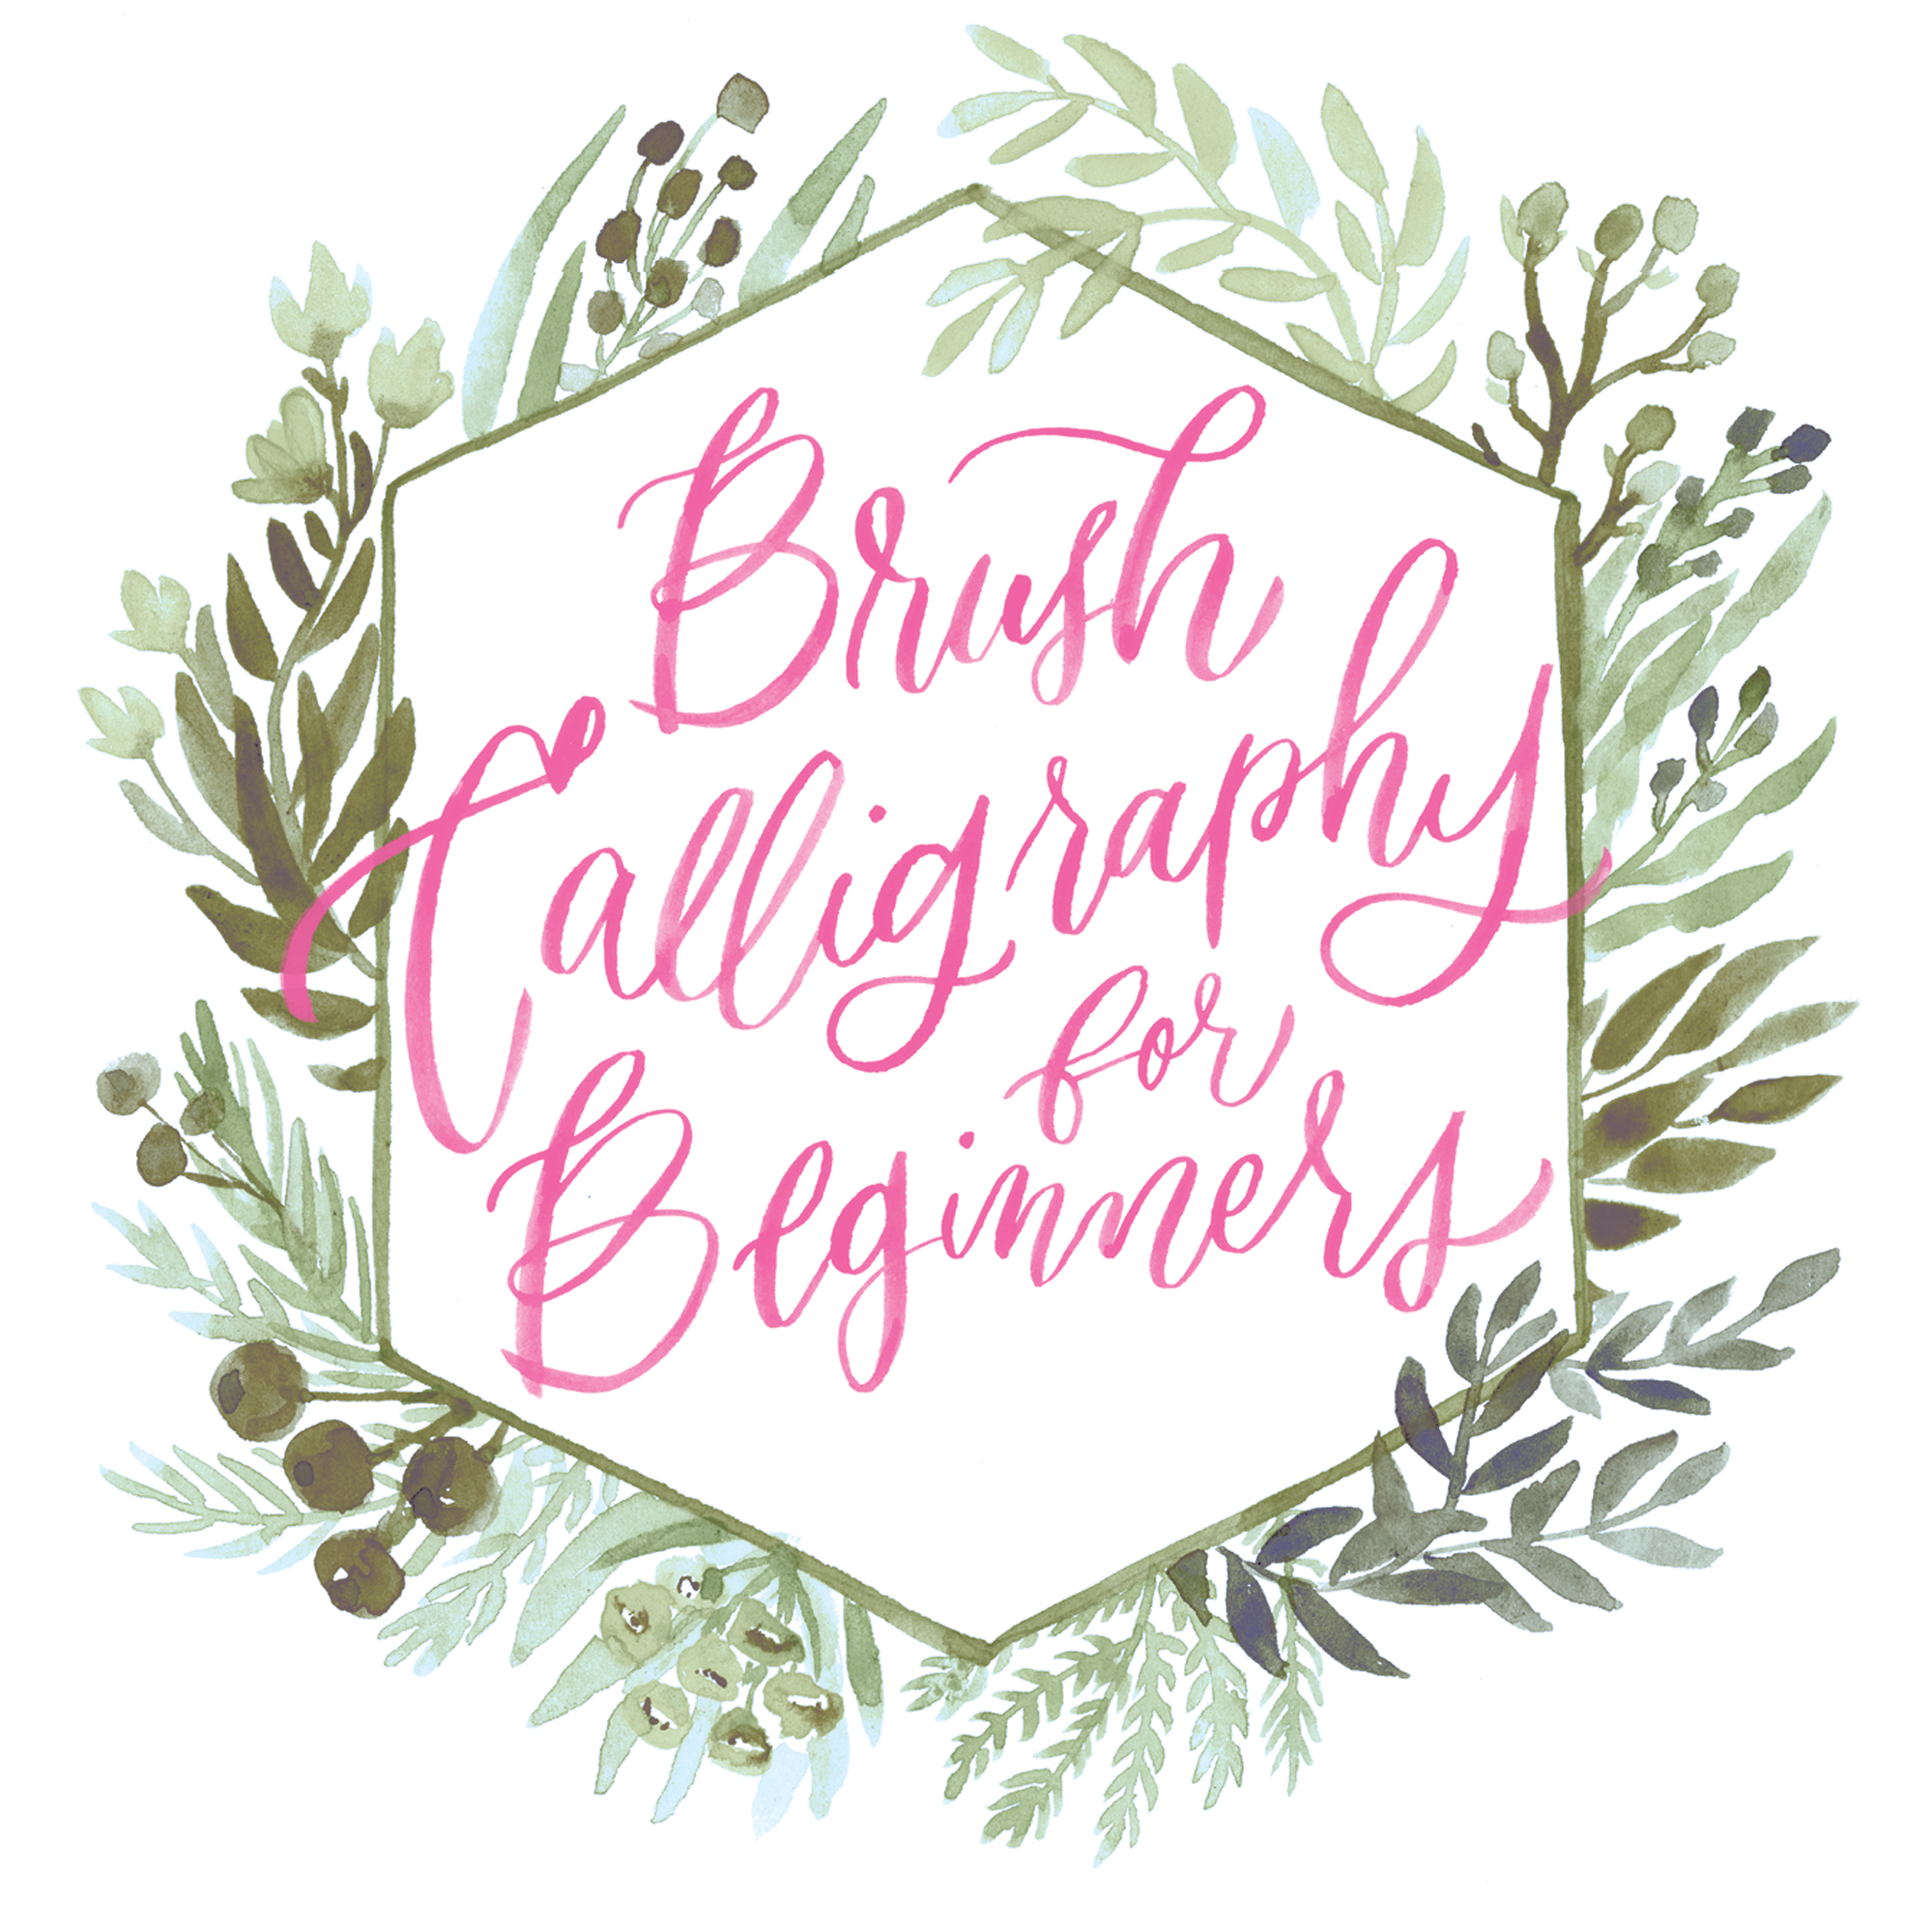 Brush Calligraphy Supplies for Beginners